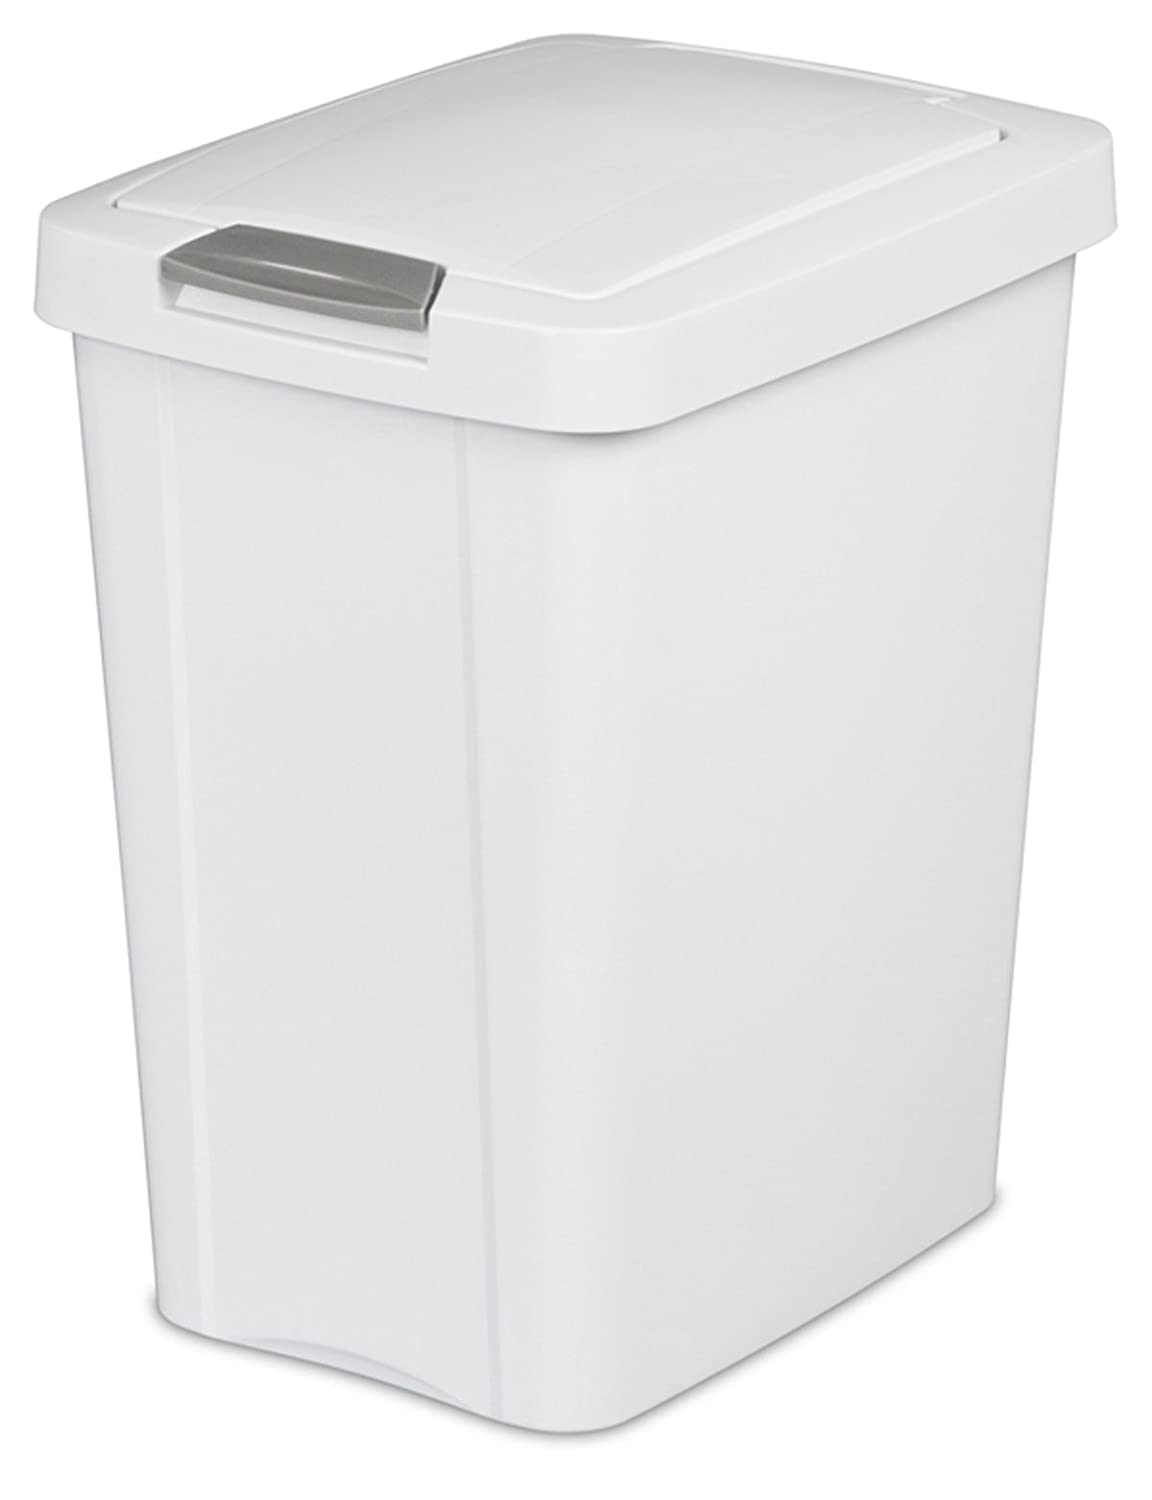 Amazon.com: Sterilite 10438004 7.5 Gallon TouchTop Wastebasket ...